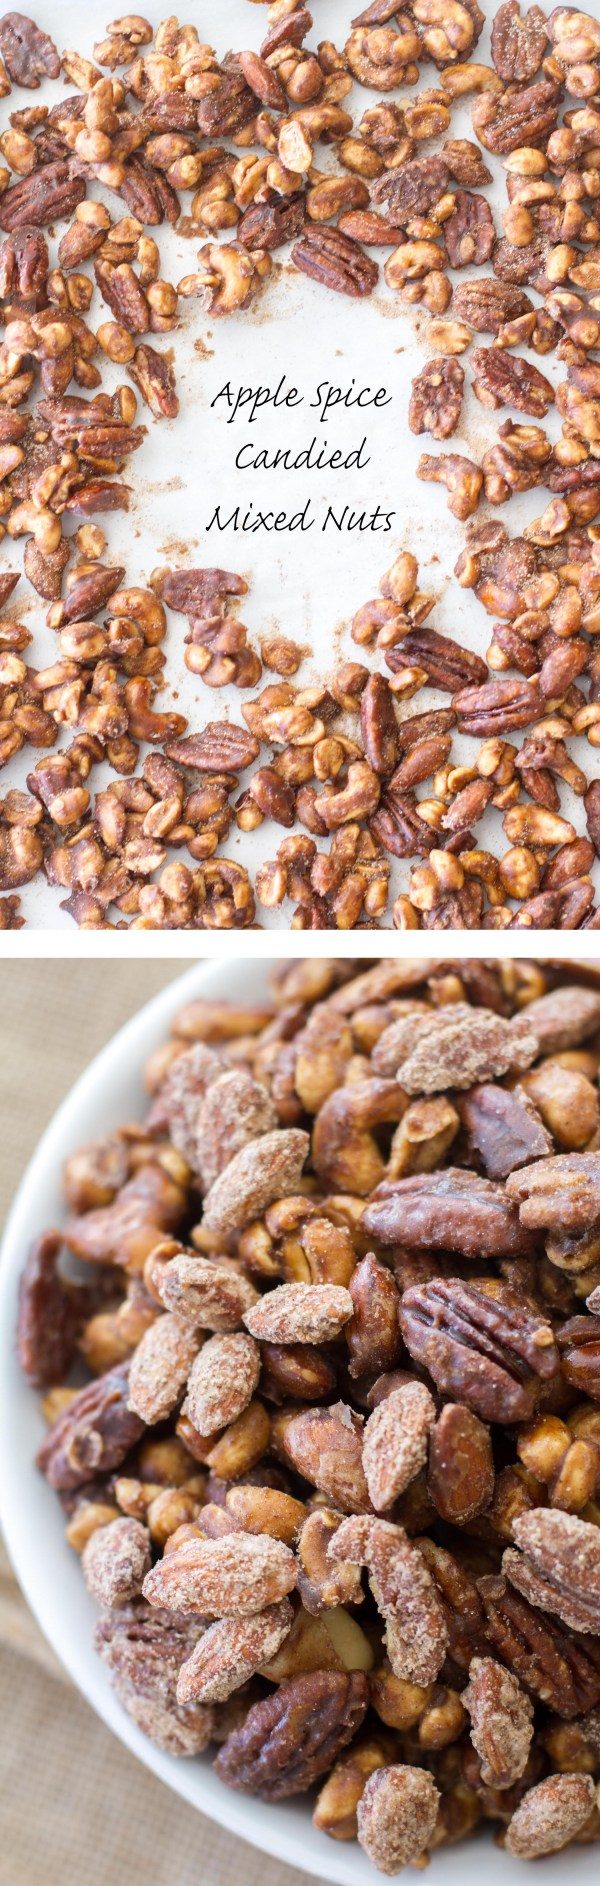 These sugared almonds, cashews, and pecans are filled with sweet apple spice and brown sugar flavor!  The perfect holiday party snack!